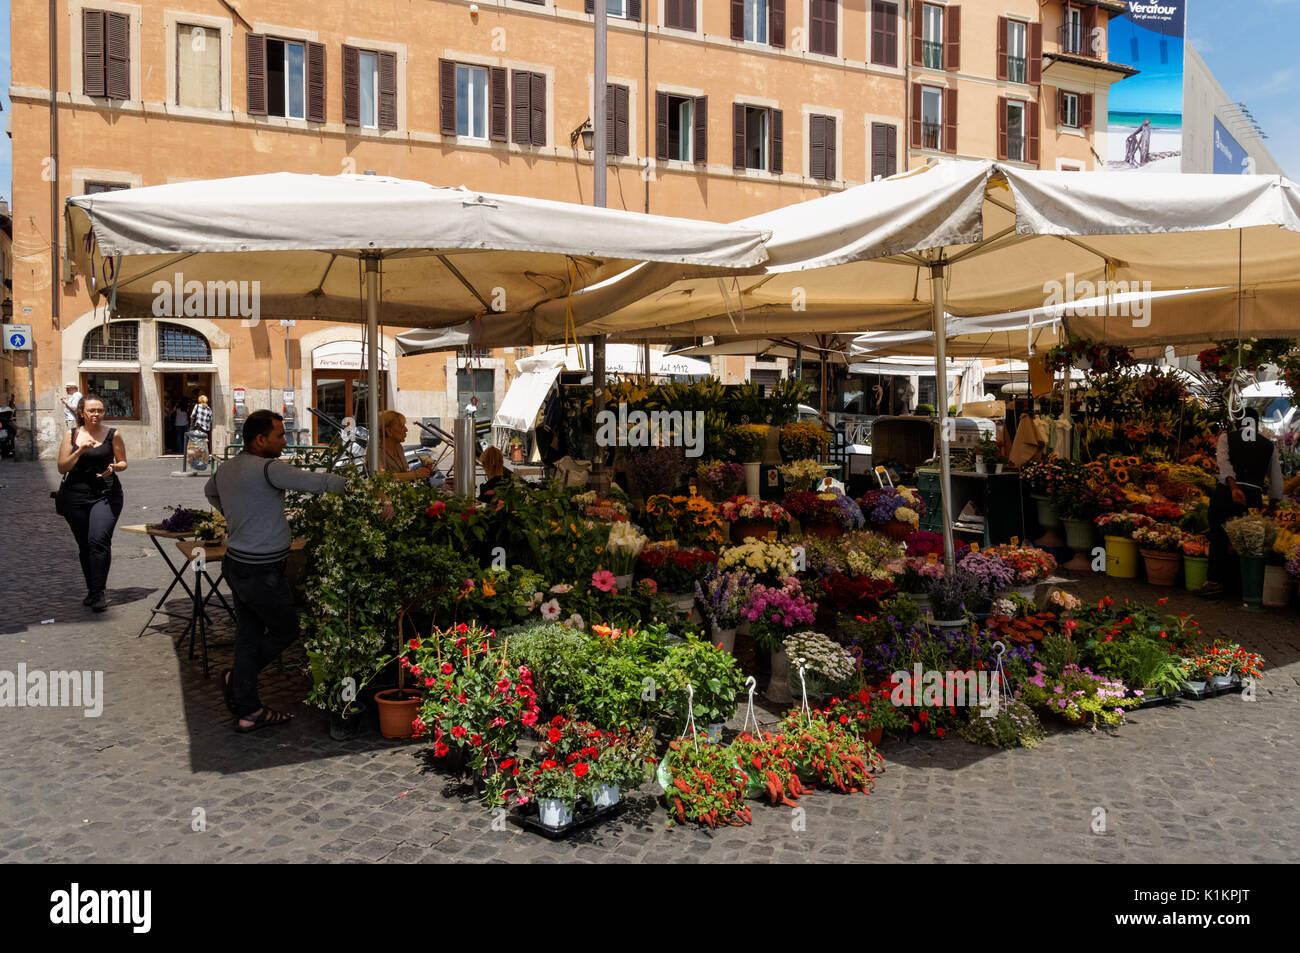 Flower stand at the Campo de' Fiori in Rome, Italy - Stock Image